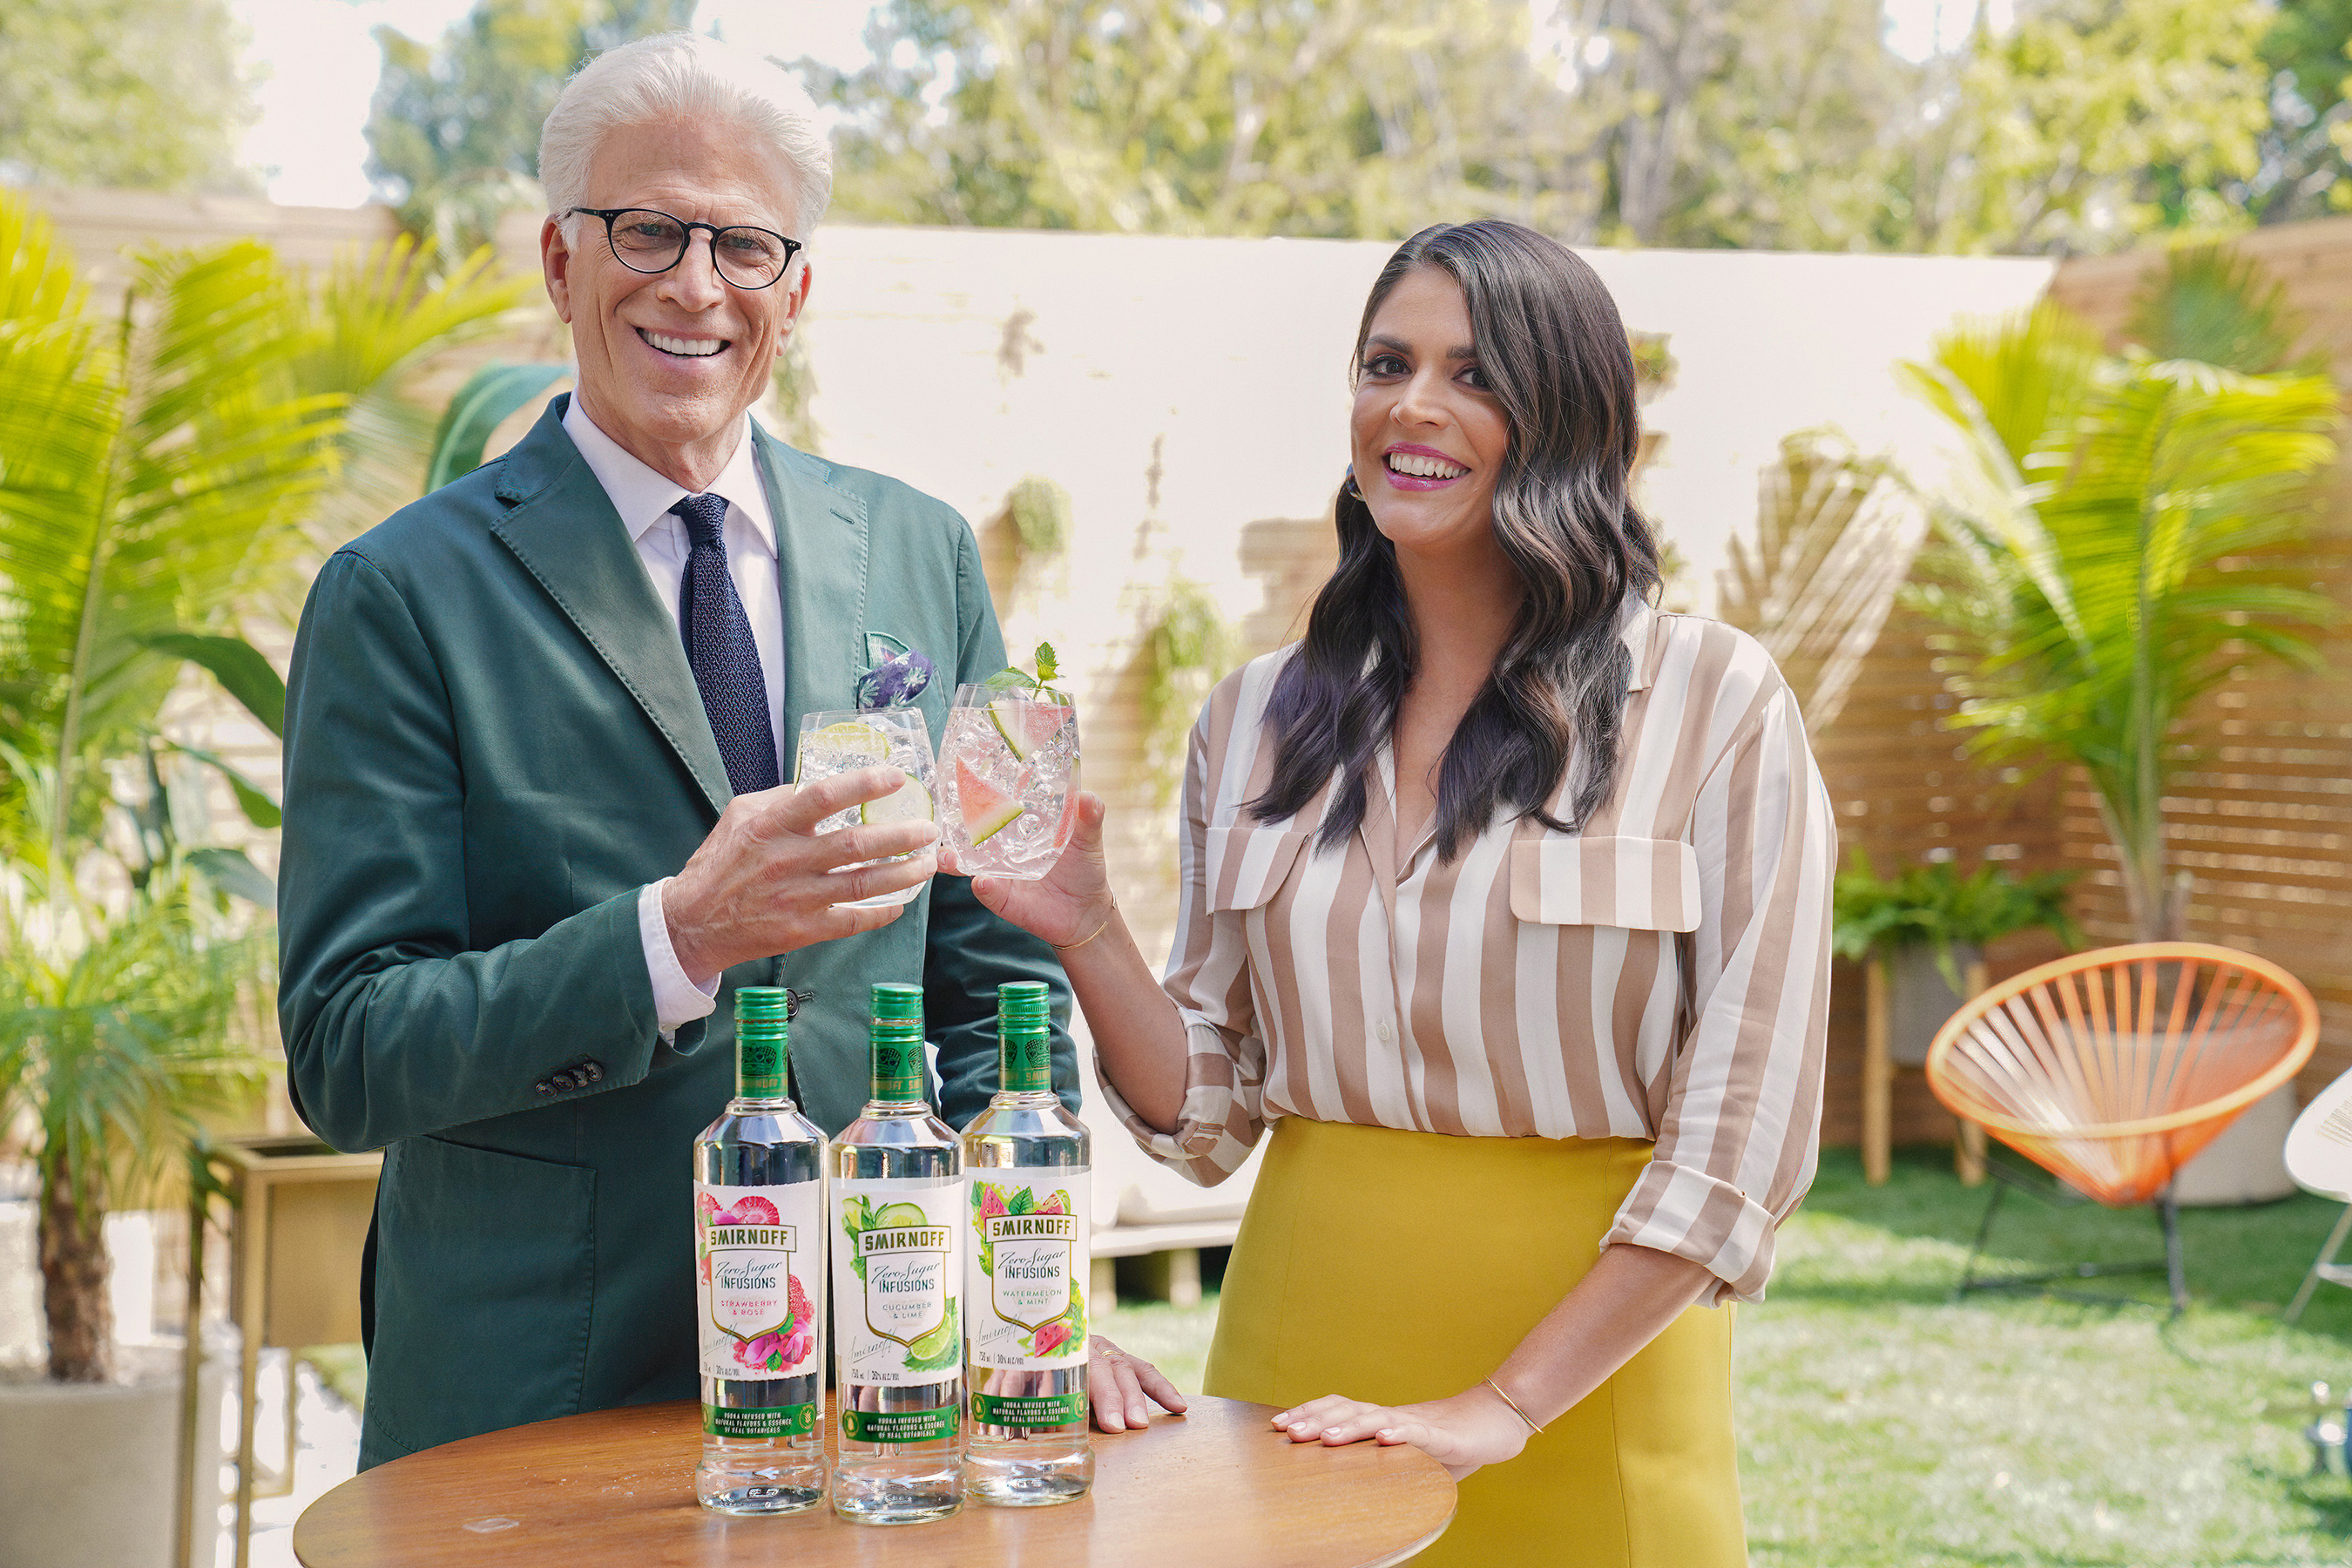 Ted Danson and Cecily Strong Raise A Glass To New Smirnoff Zero Sugar Infusions